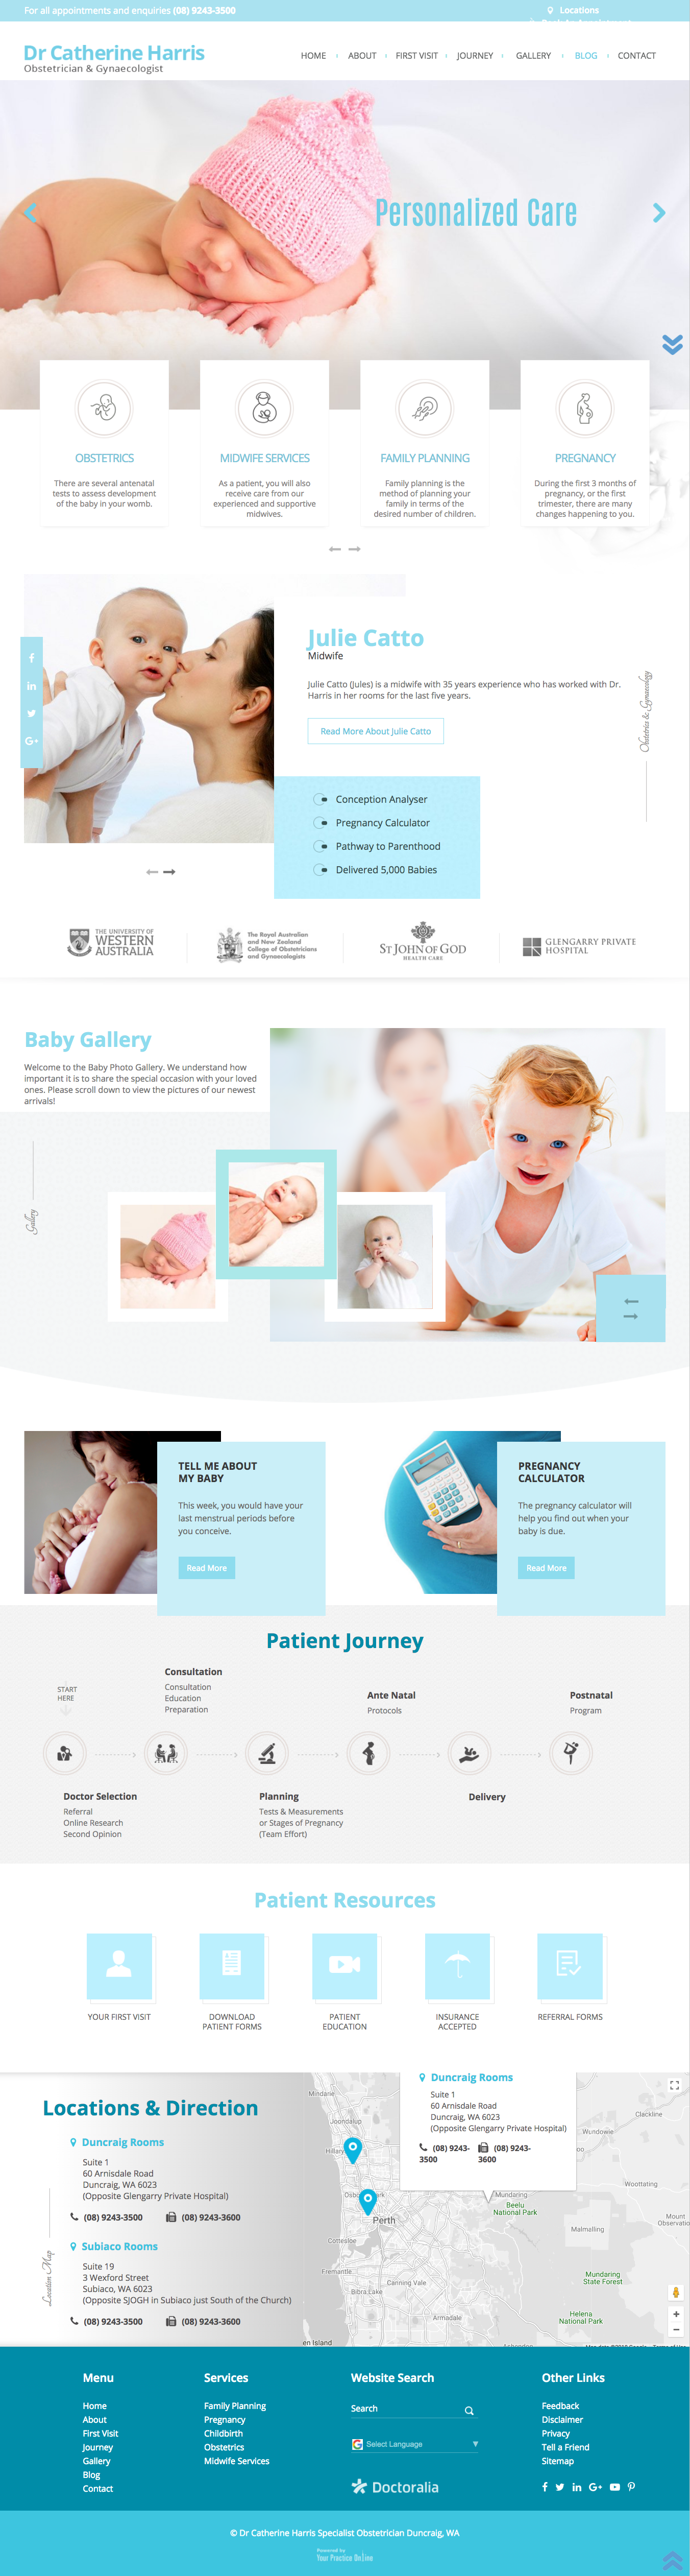 Website Redesign for Perth Obstetrician